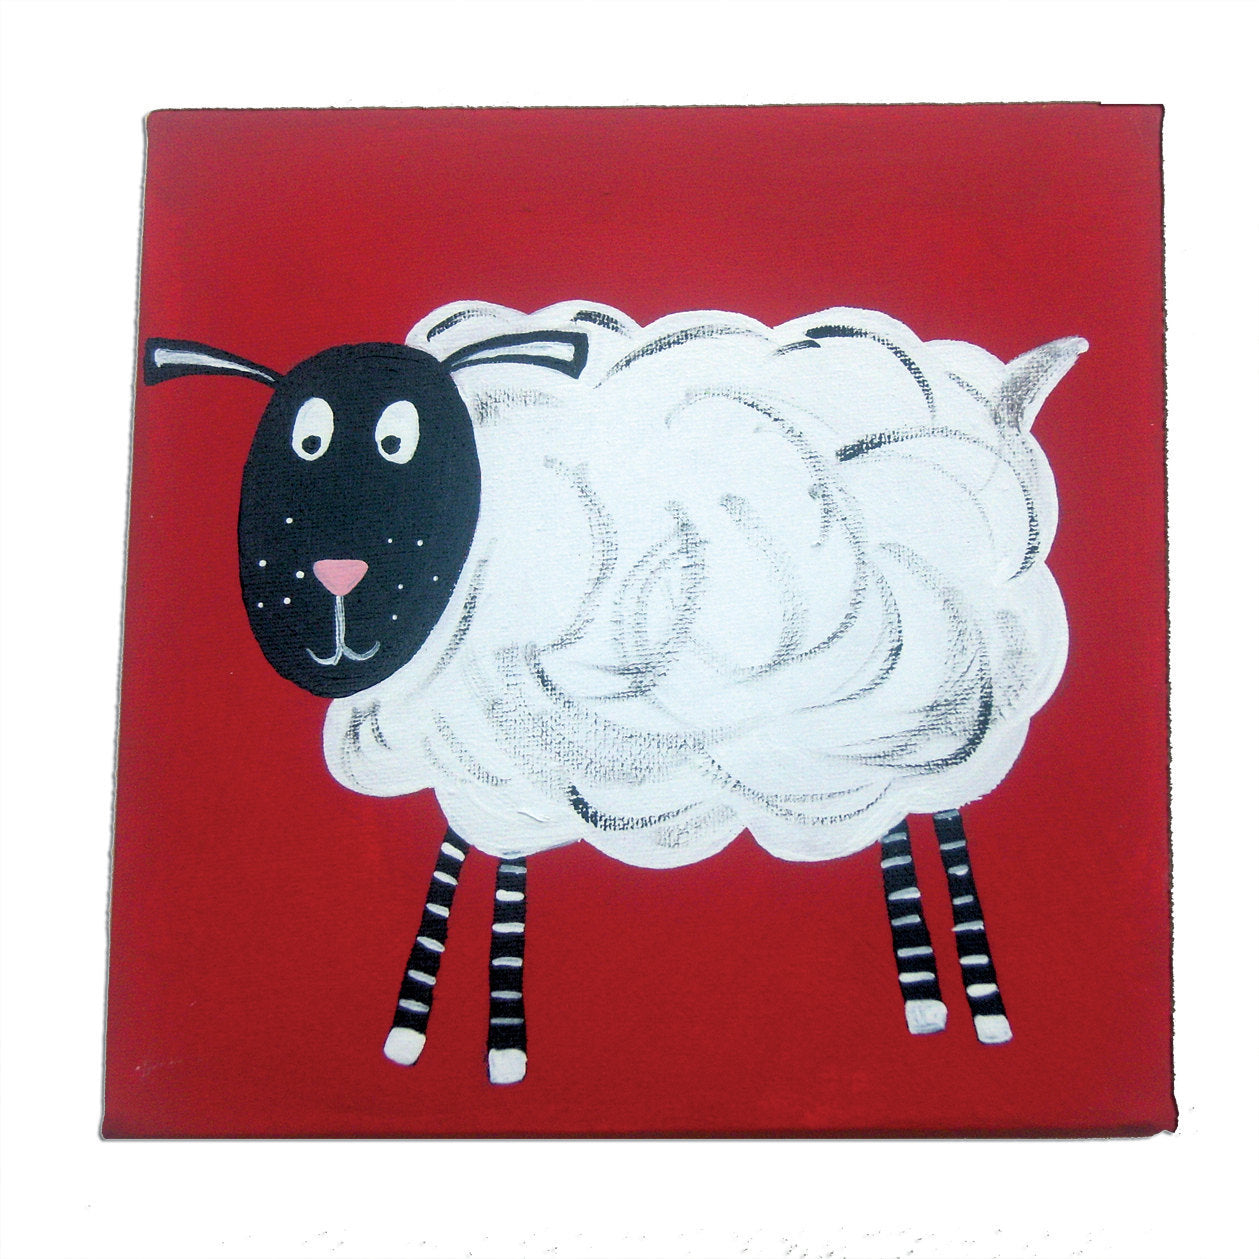 Farm Animal Sheep Art, Painting on Canvas, Farm Decor, Sheep Painting, Baby Boy Nursery, Original Art